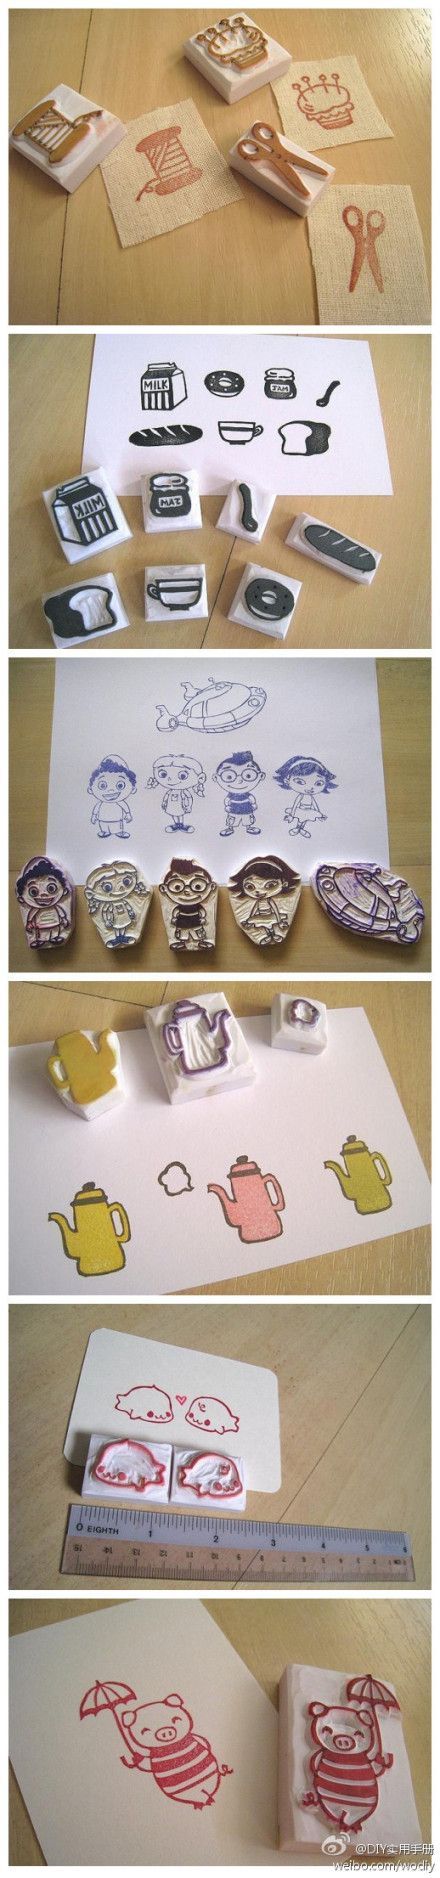 Rubber stamps arts and crafts - Find This Pin And More On Craft Ideas Rubber Stamp